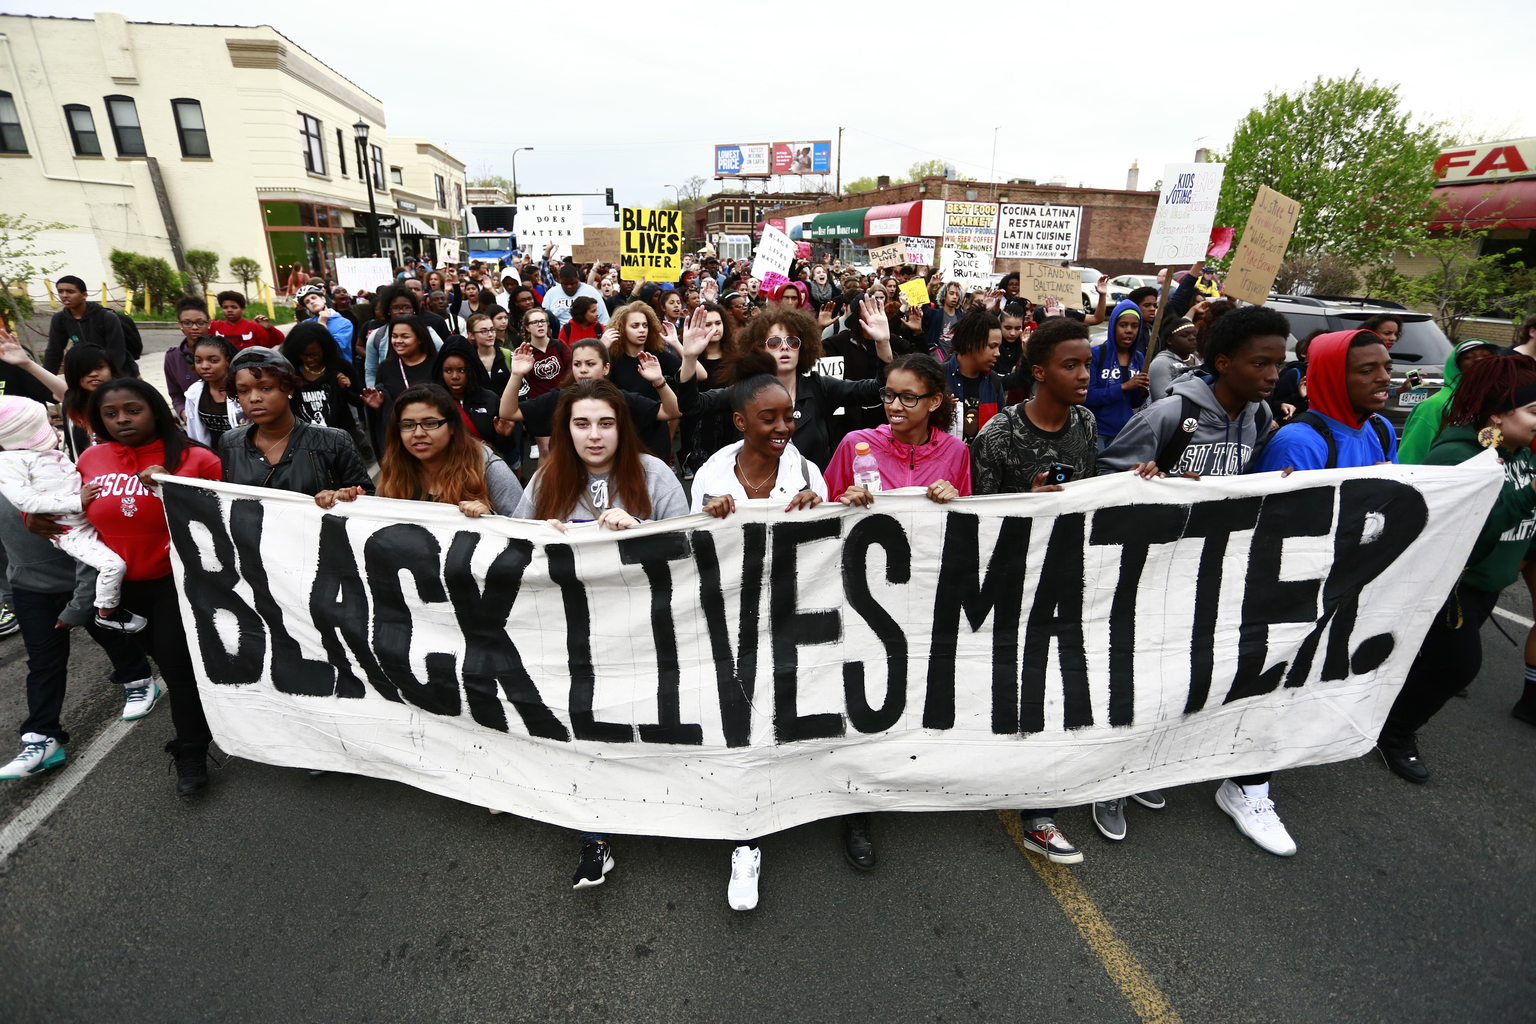 Black Lives Matter/May Day Event, May 1, 2015